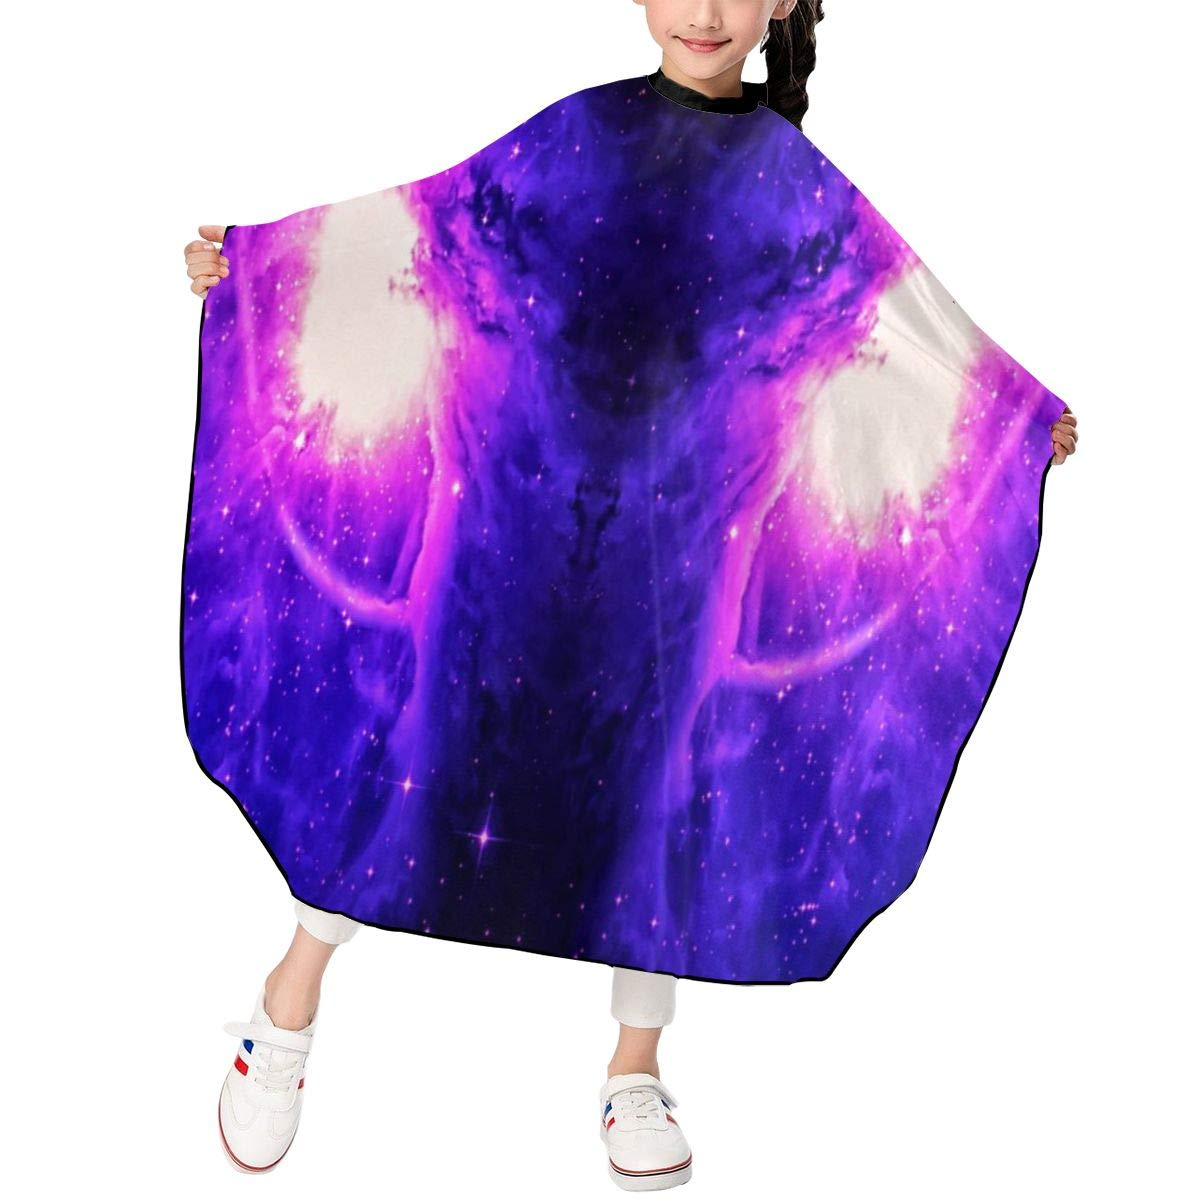 The Orion Nebula Kids Barber Cape Professional Home Salon Waterproof Hair Cut Hairdressing Gown Styling Cloak for Child/Boys/Girls